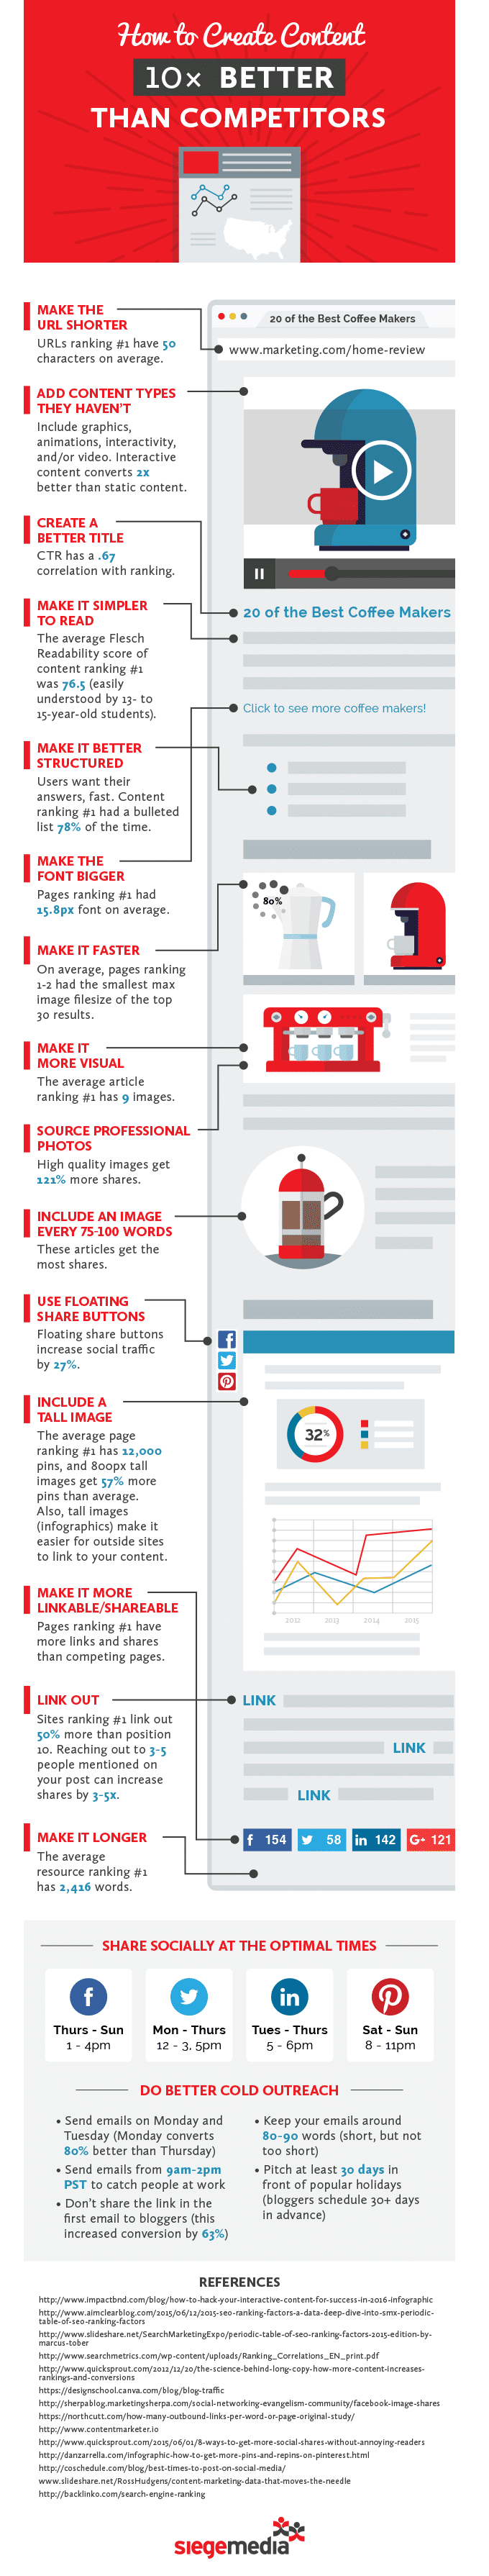 How To Create Better Content Infographic